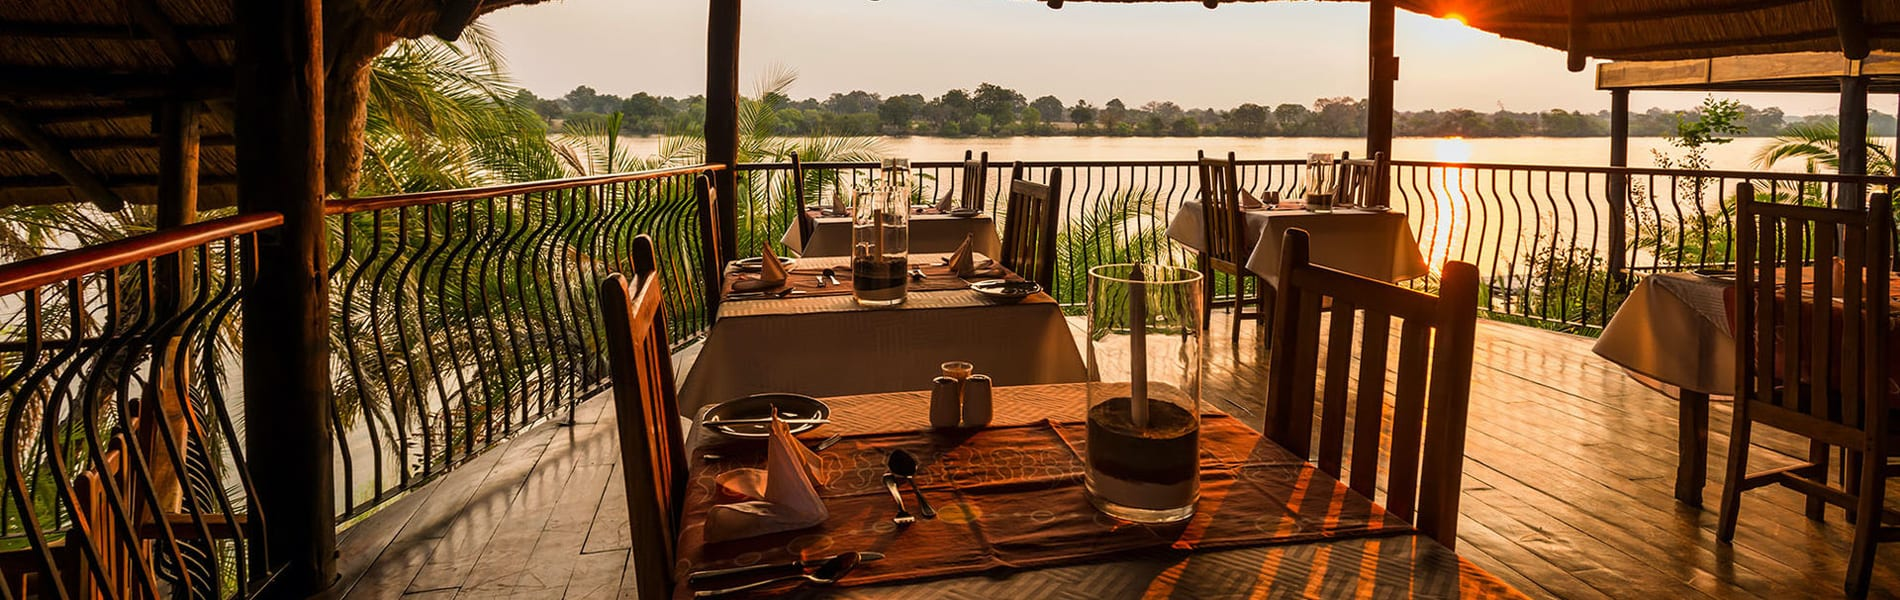 Mukambia Safari Lodge